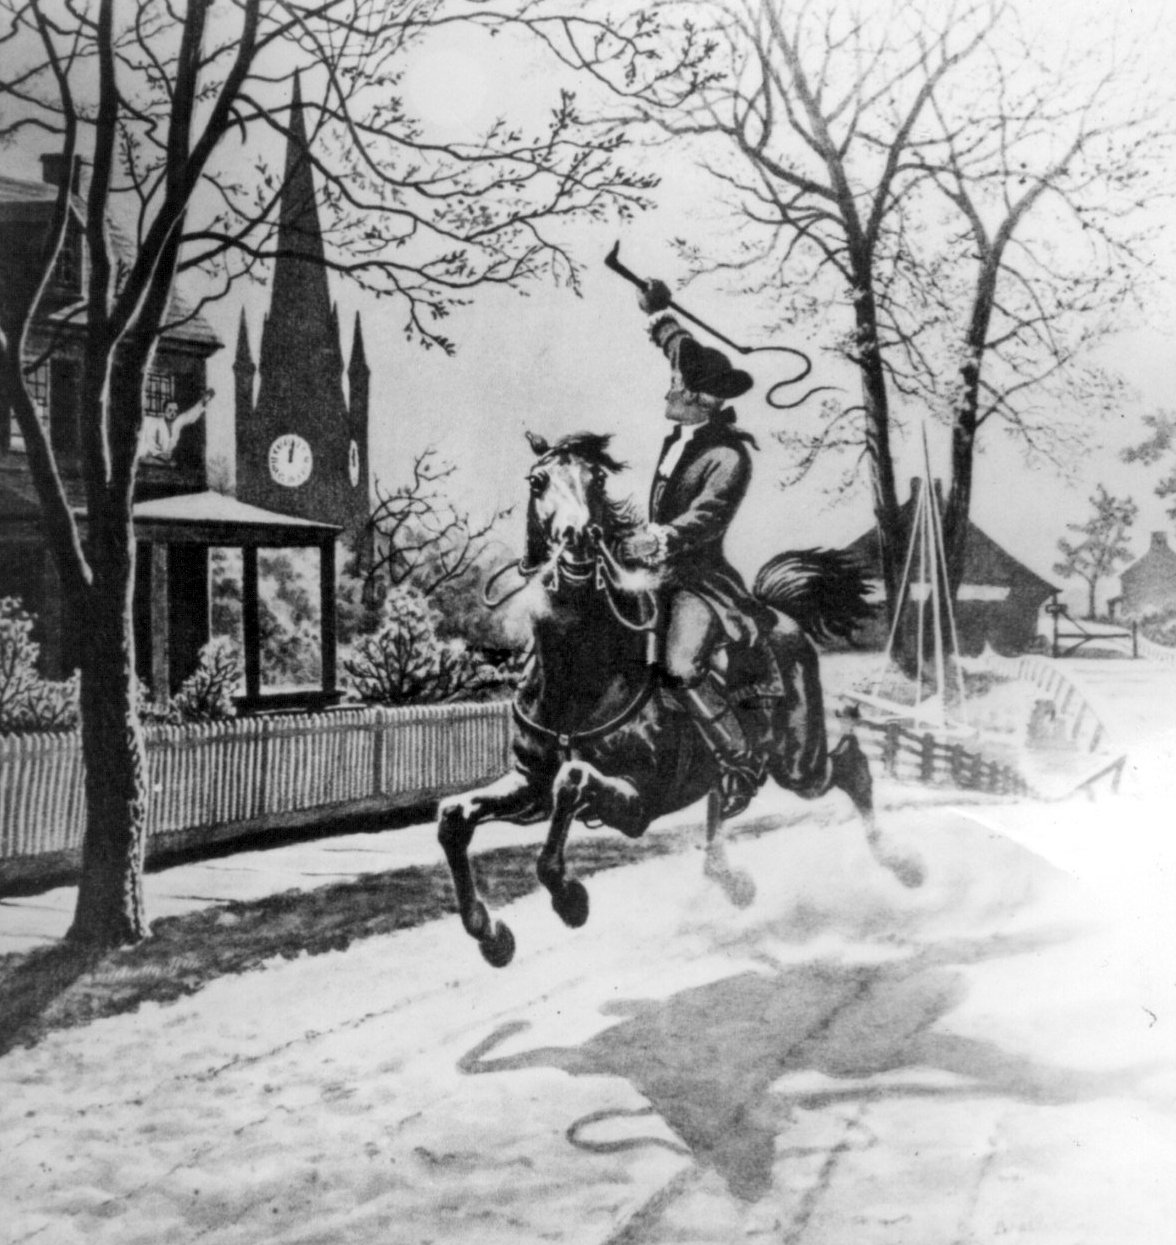 20th century depiction of Paul Revere's midnight ride.